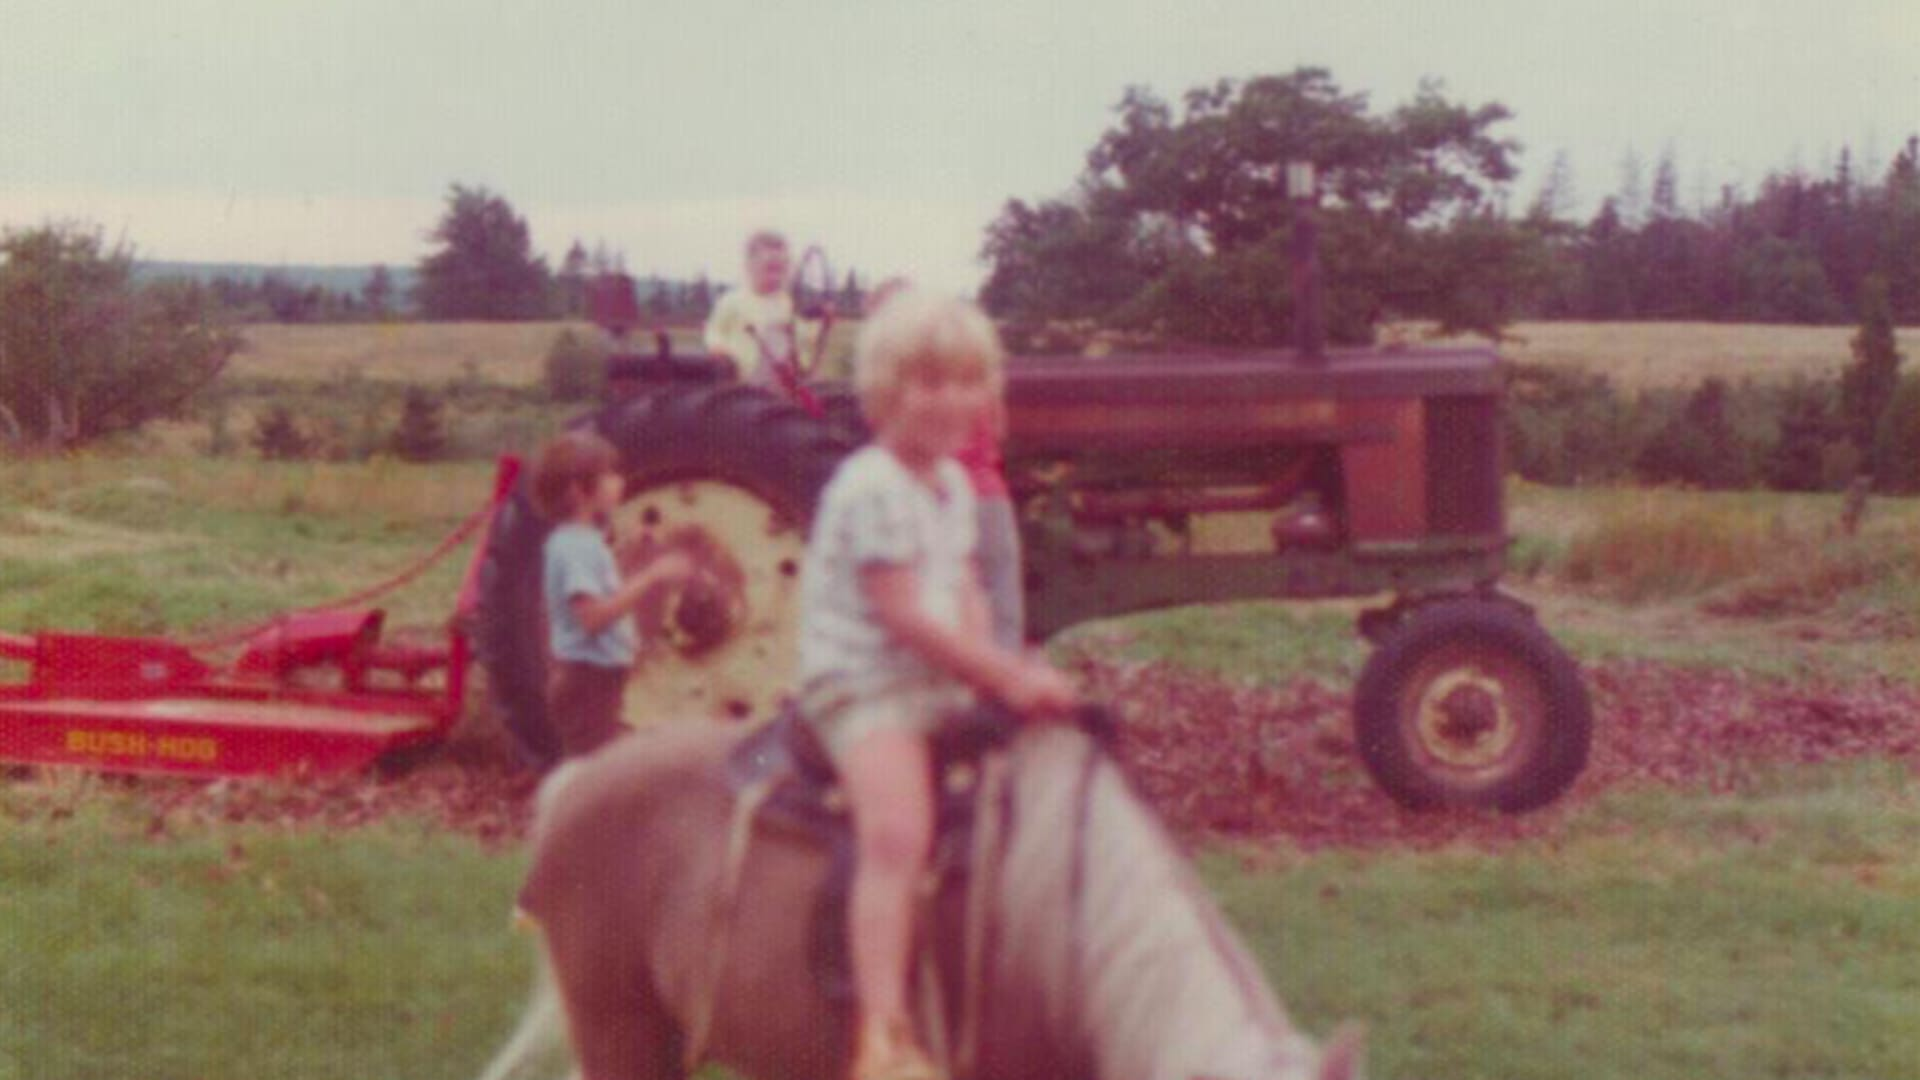 Ethan Brown (center) as child at his family's farm in Appalachia